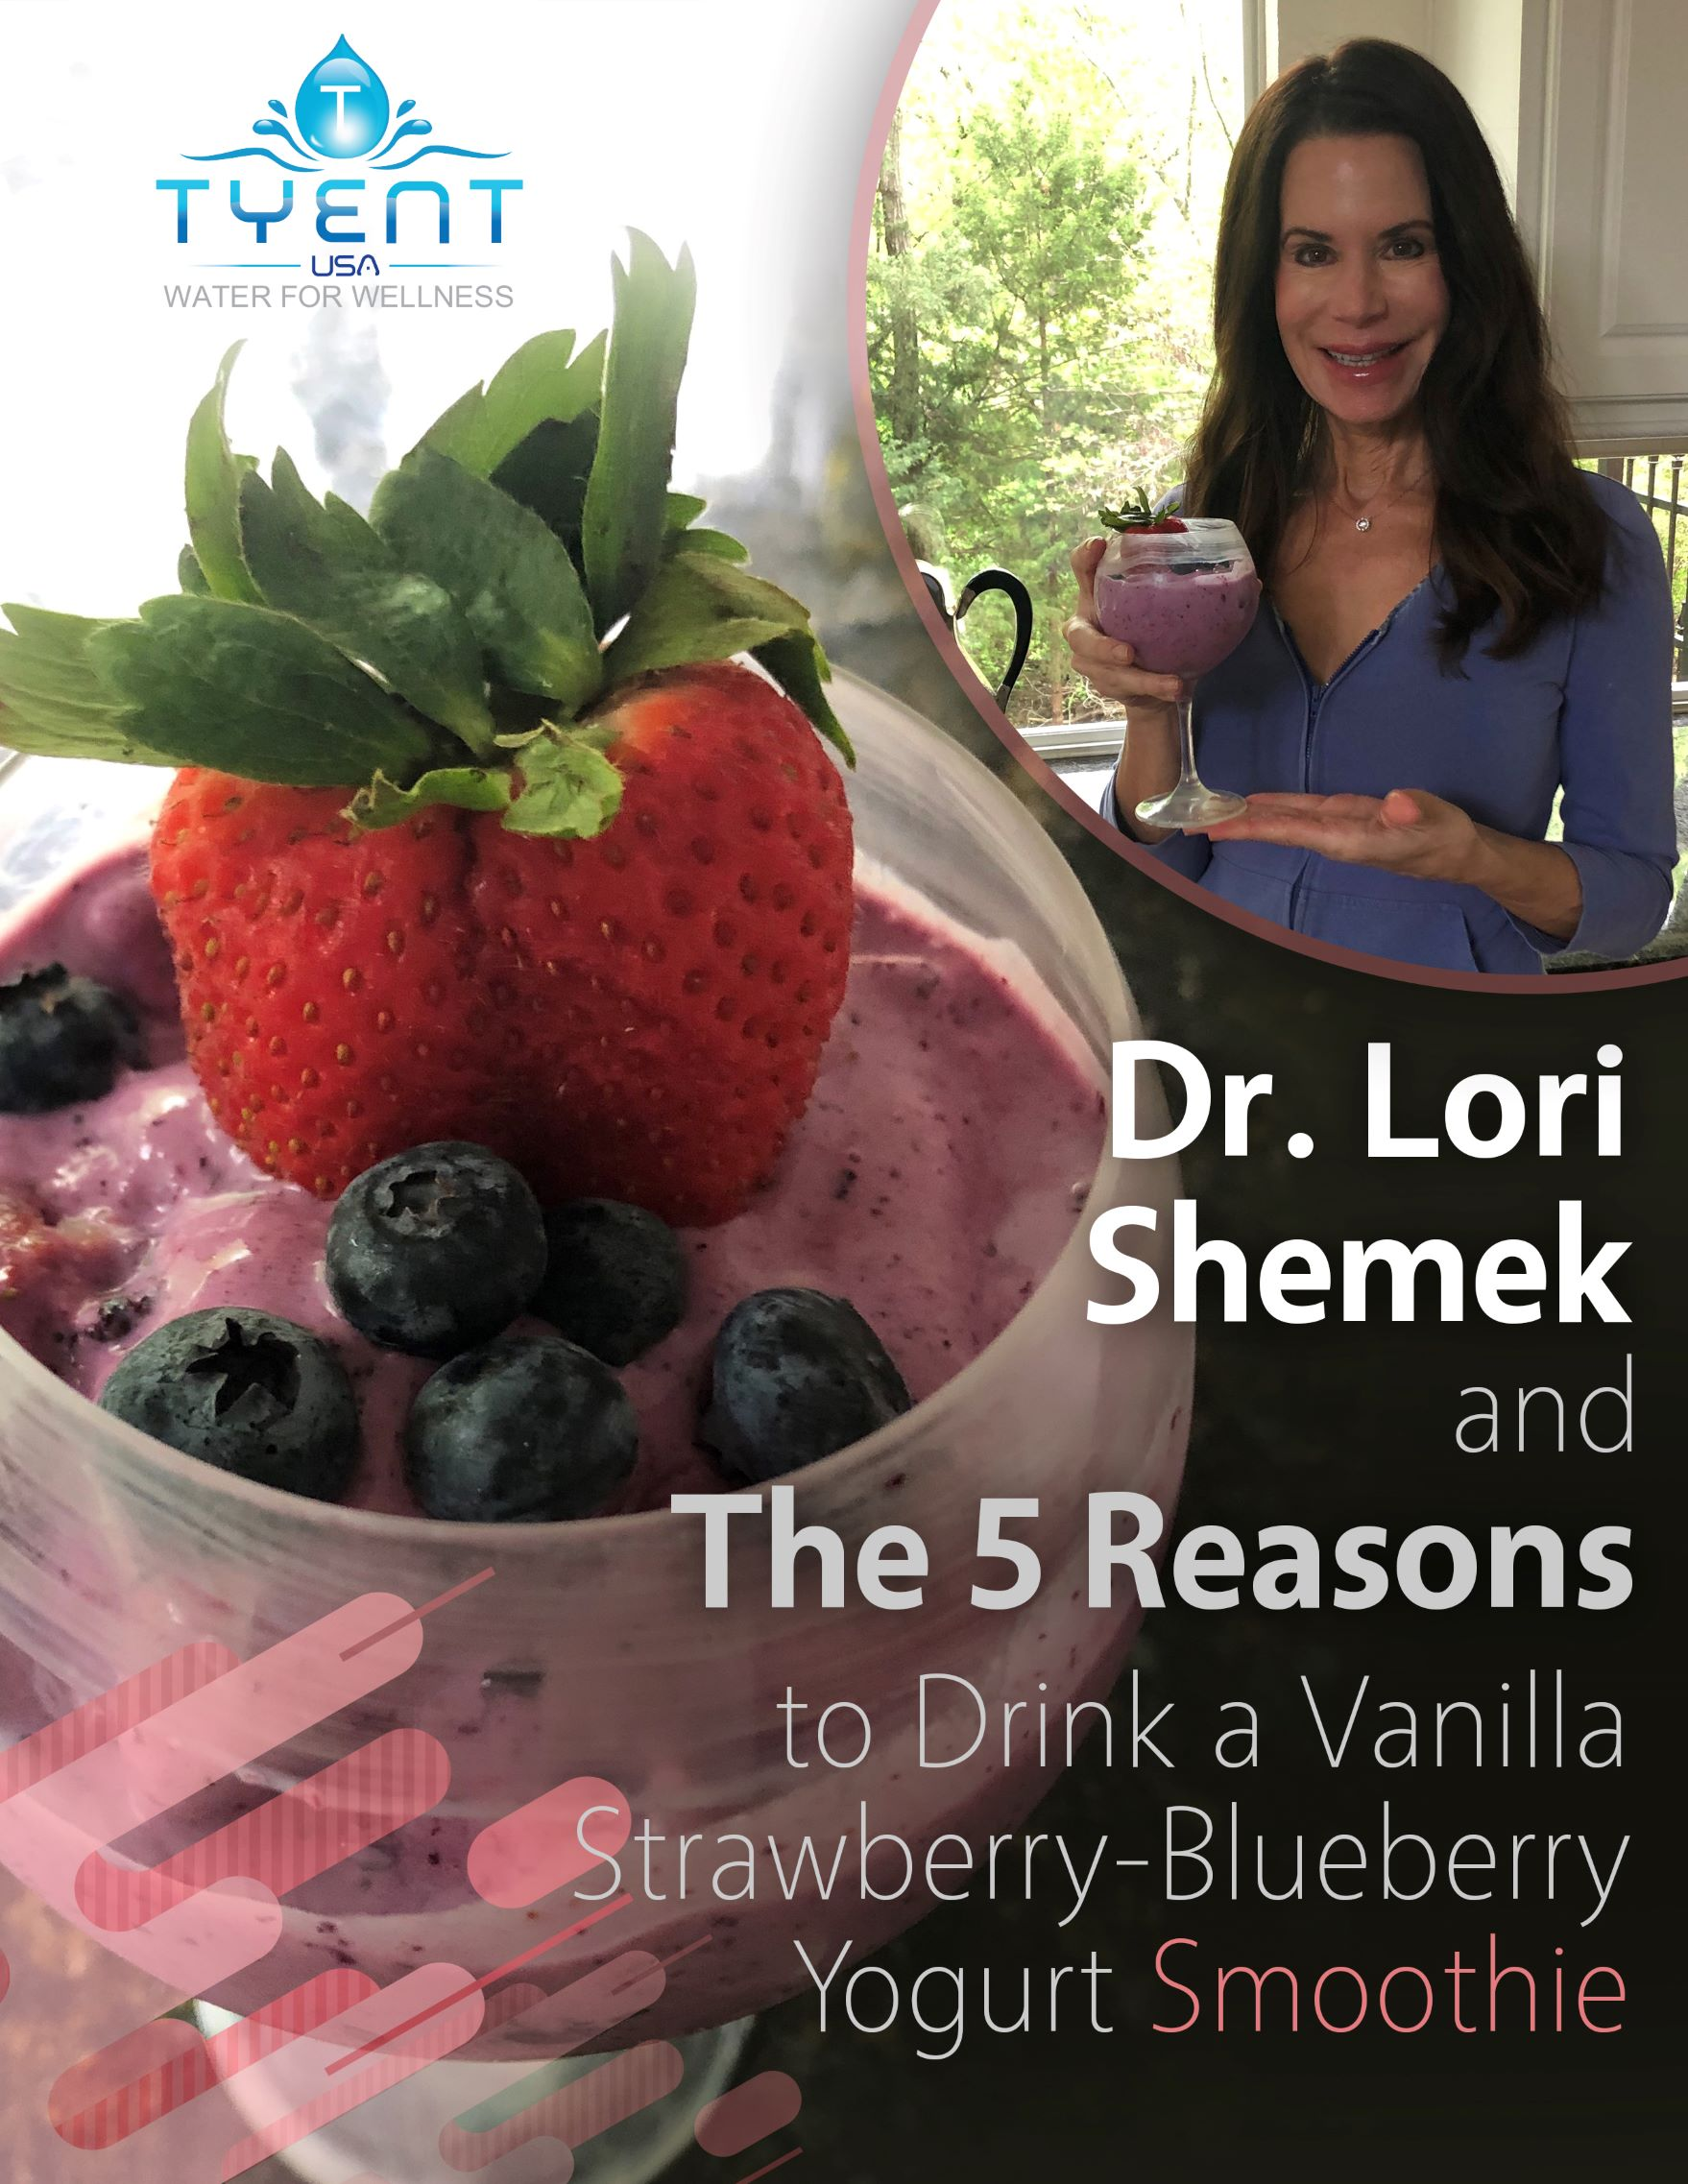 5 Reasons to Drink a Vanilla Strawberry-Blueberry Yogurt Smoothie